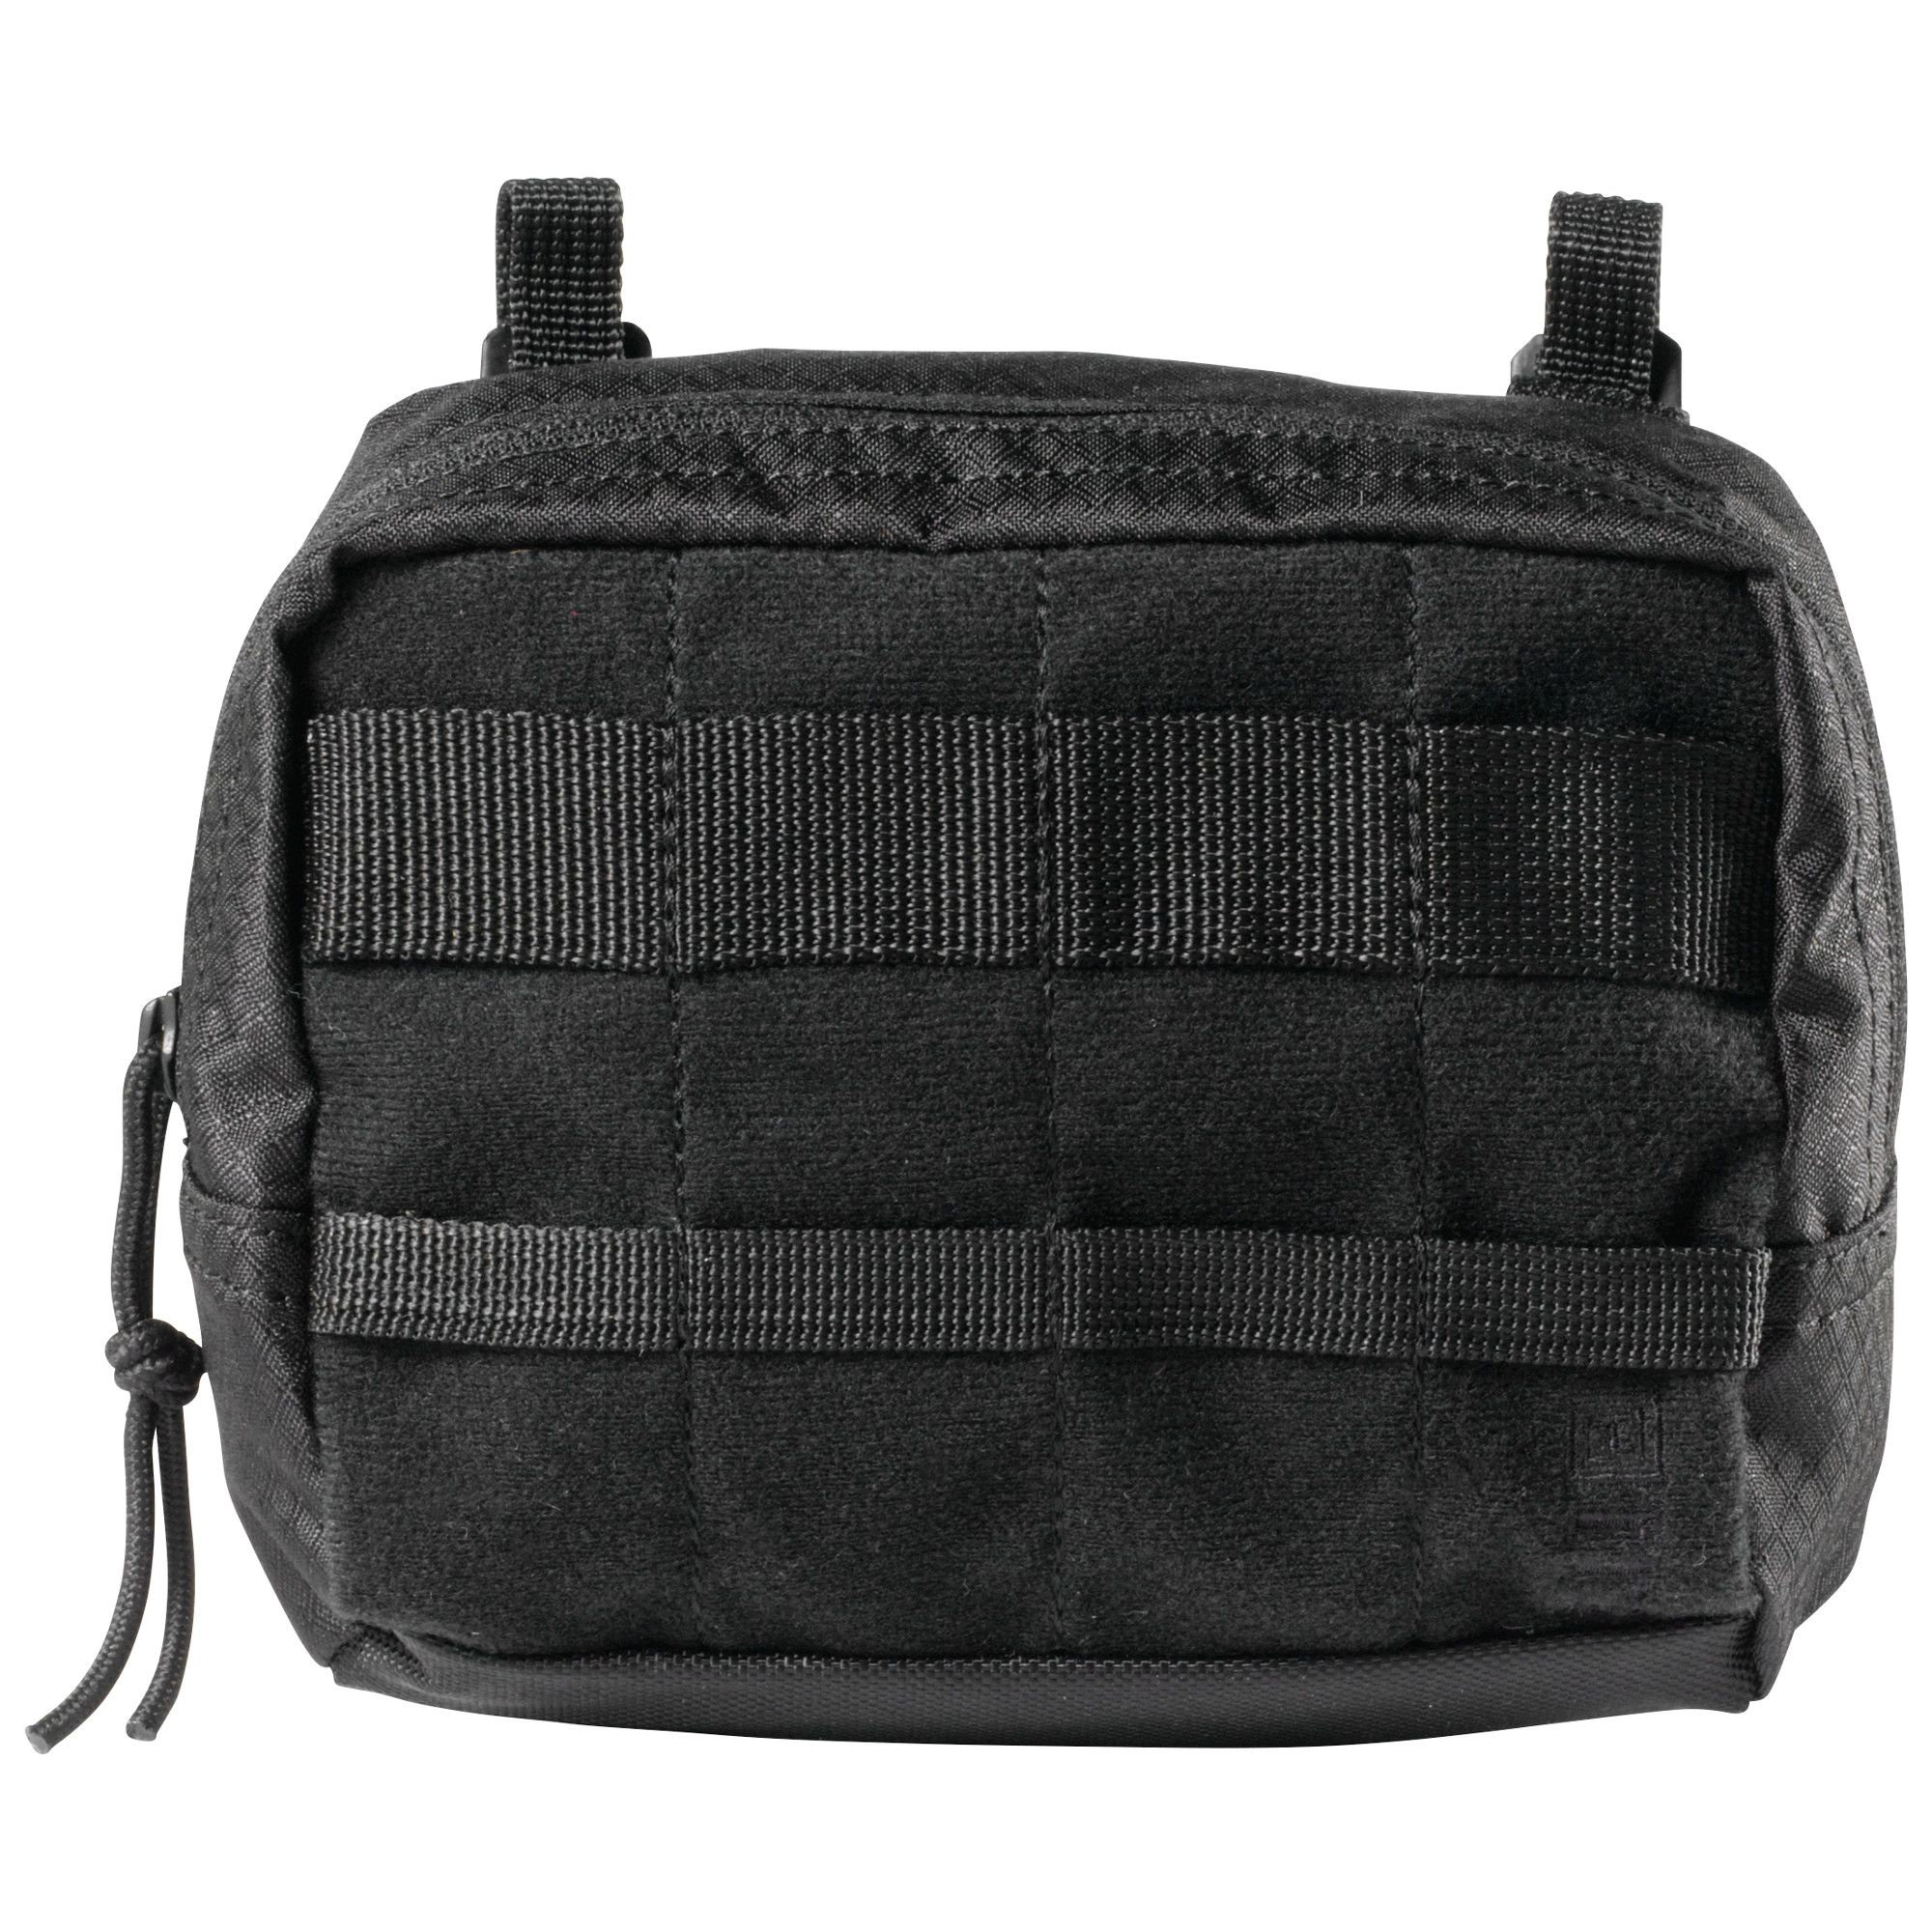 IGNITOR 6.5 POUCH – Black